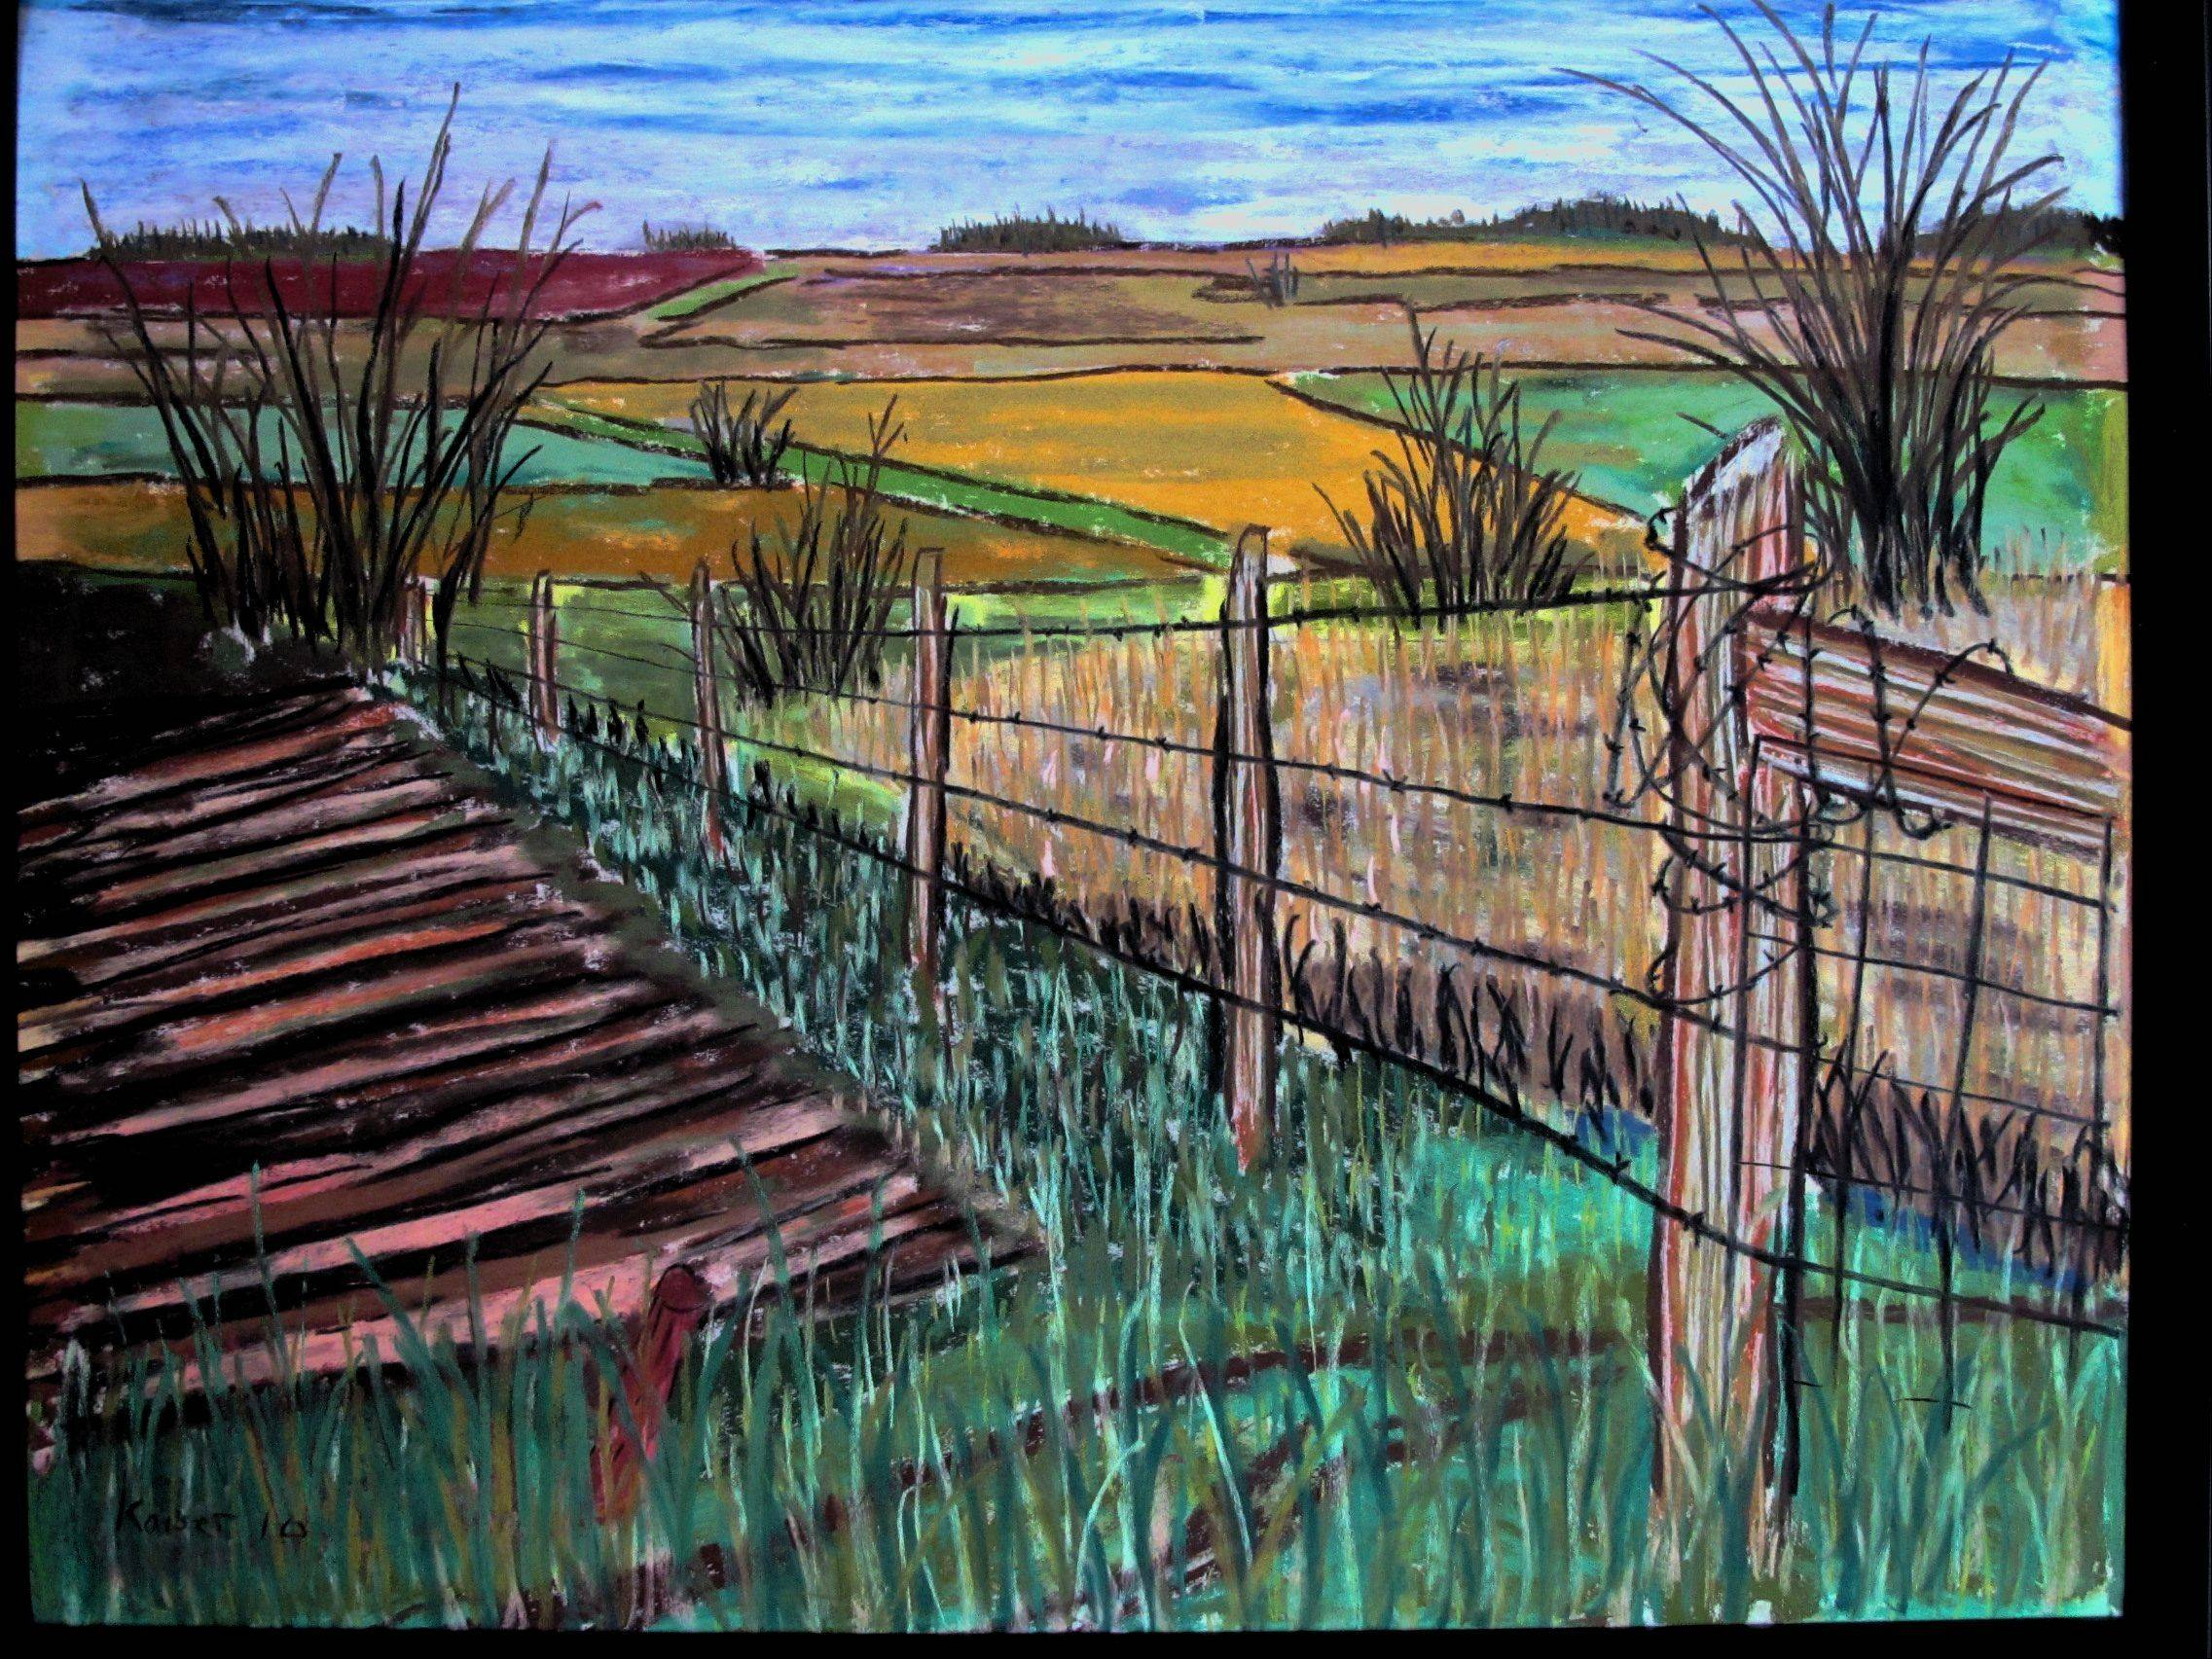 """Starzec Farm, Rte. 83,"" by Roger Kaiser, won the Lake County Prize in the 2010 art competition."